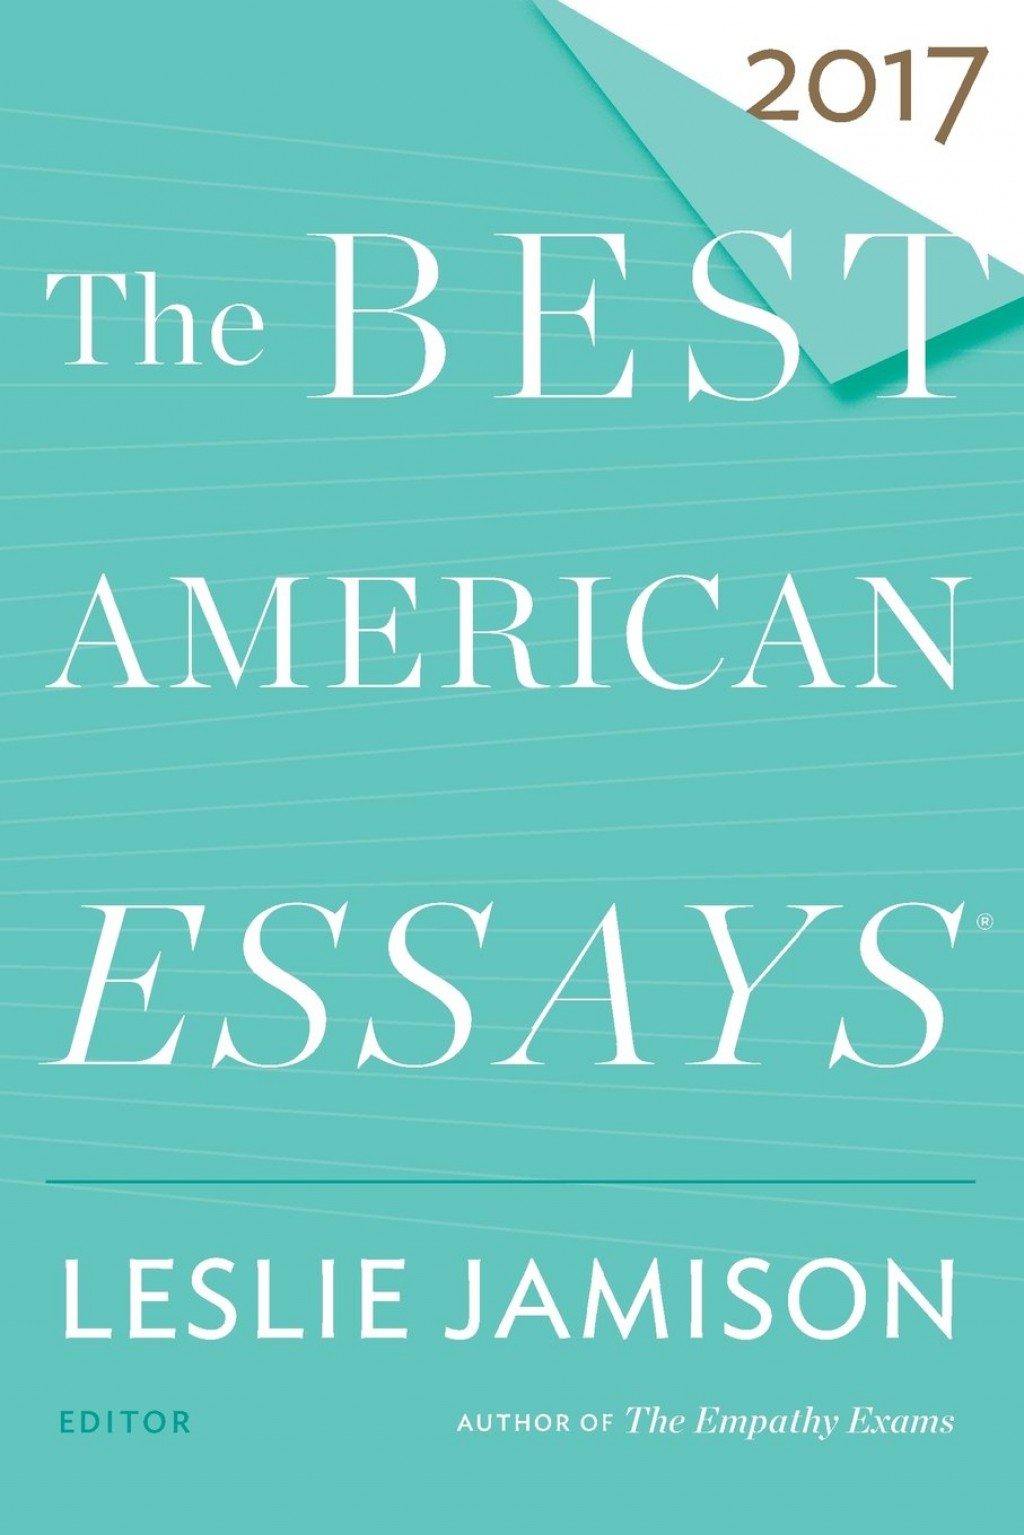 001 61tzl Nruvl Essay Example The Best American Wonderful Essays 2018 List Pdf Download 2017 Free Large